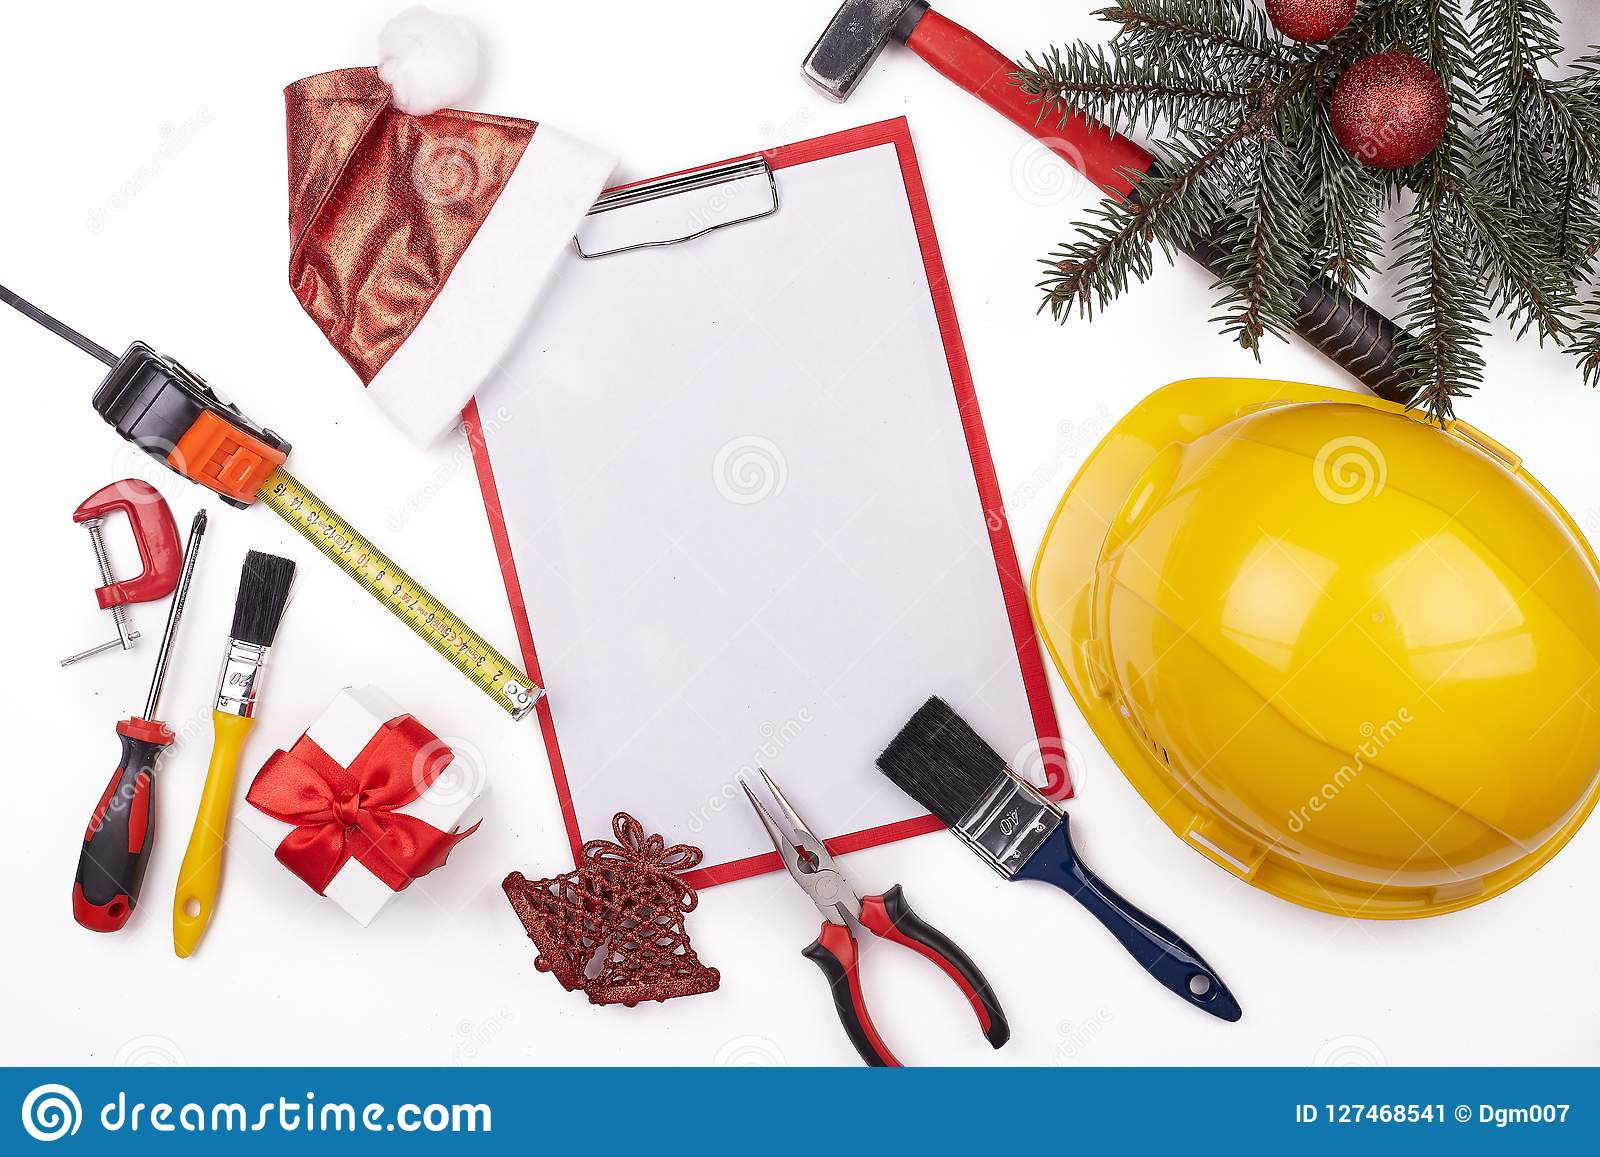 Construction Hard Hat And Christmas. Stock Image - Image of gift ...